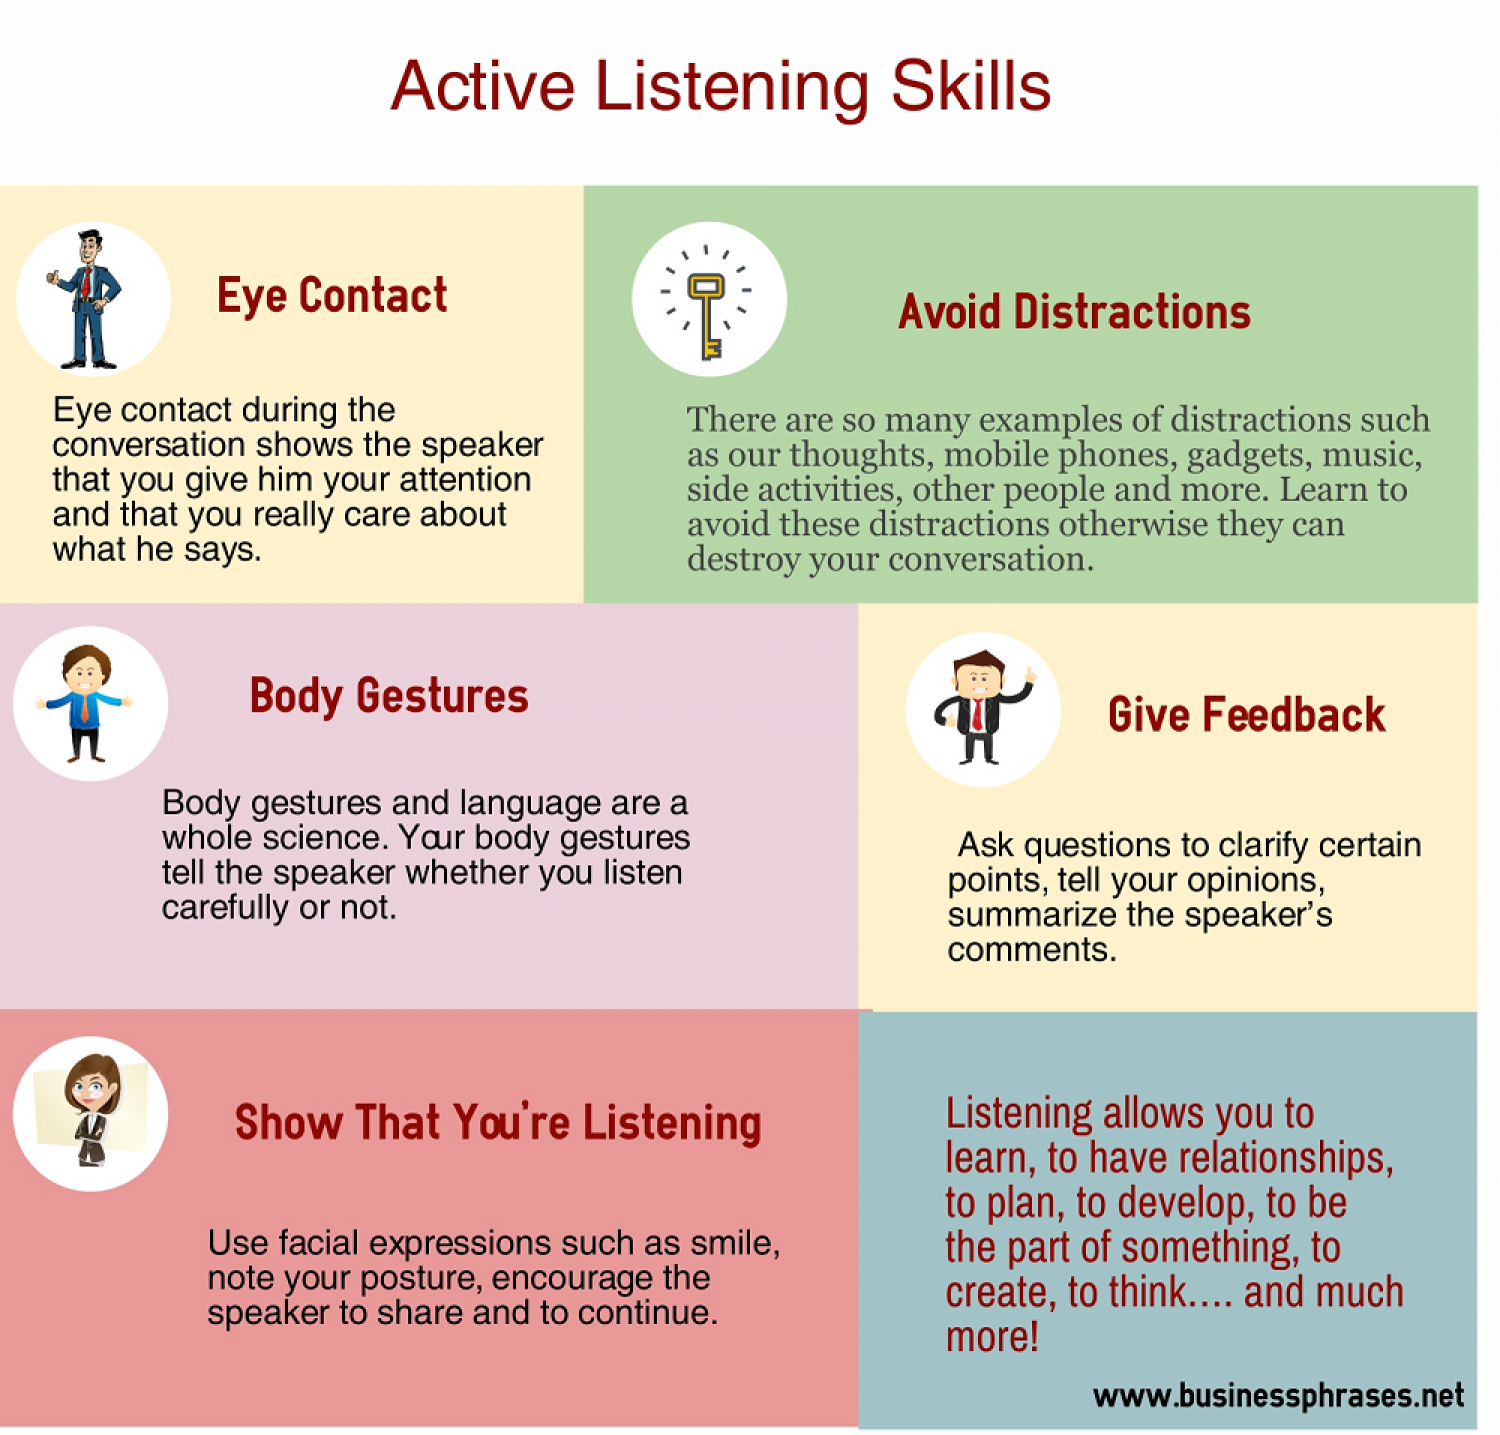 Active Listening Skills | Visual ly